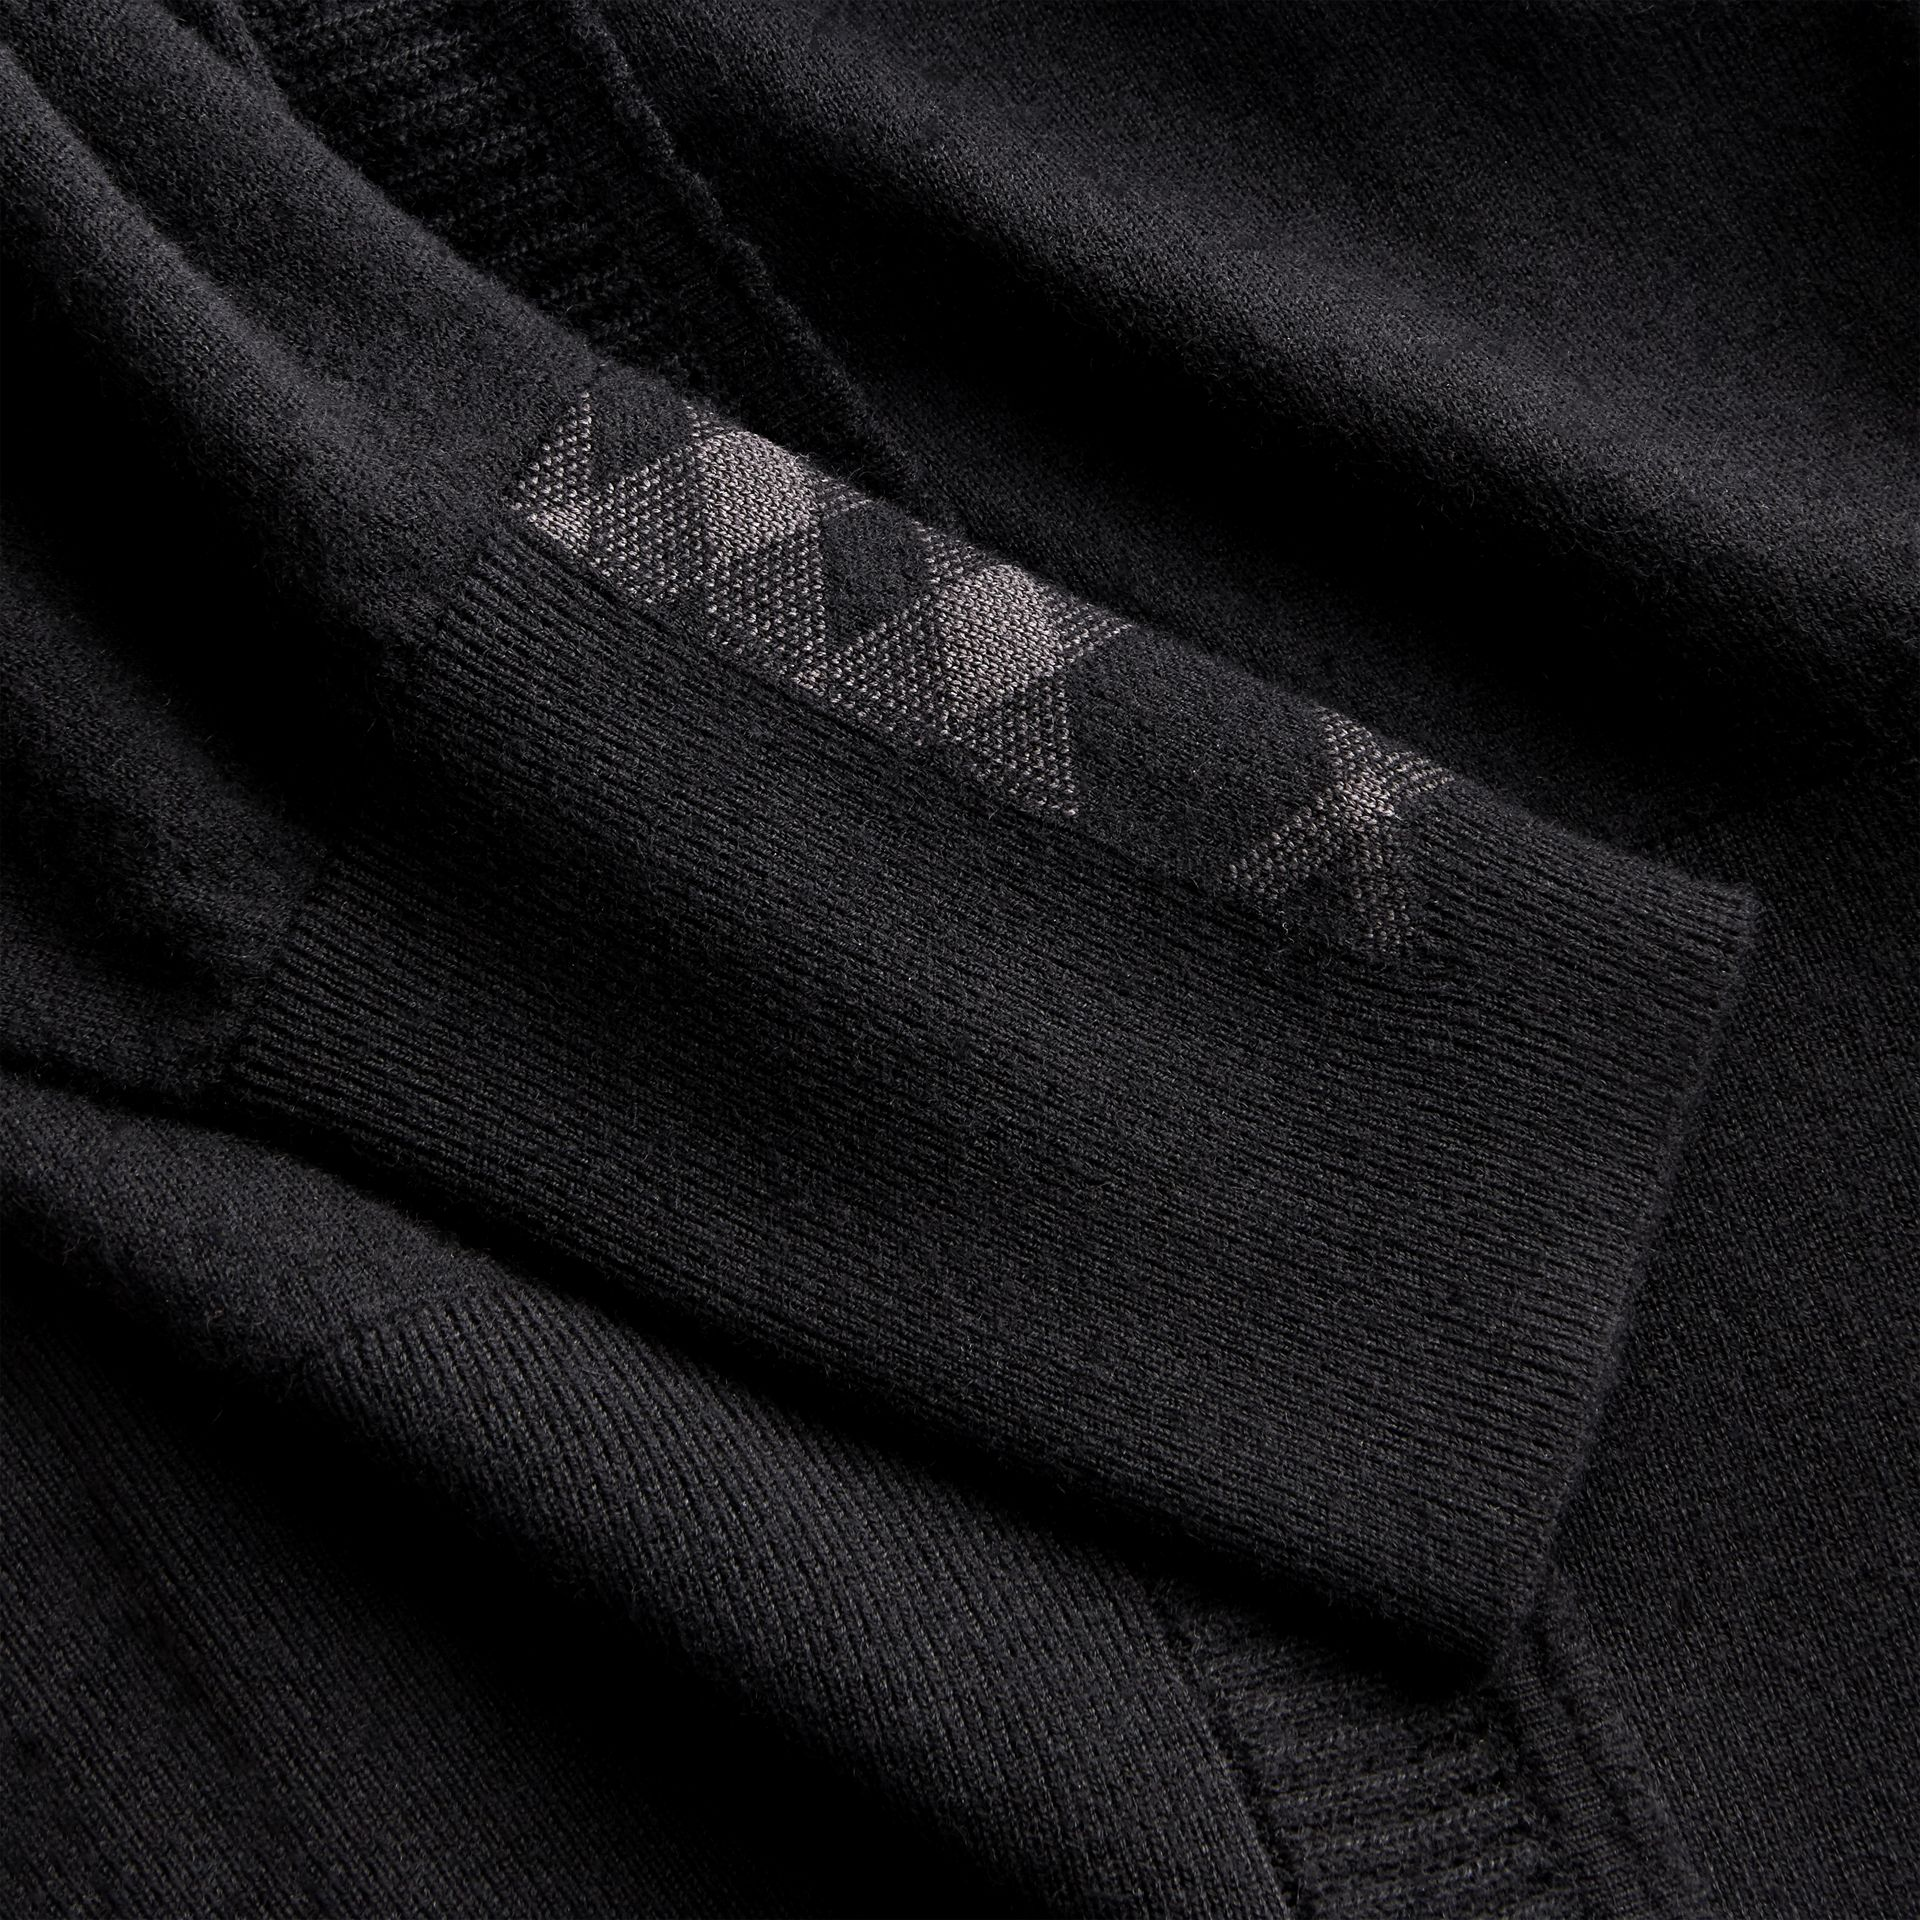 Open-knit Detail Cashmere Cardigan in Black - Women | Burberry Hong Kong - gallery image 2